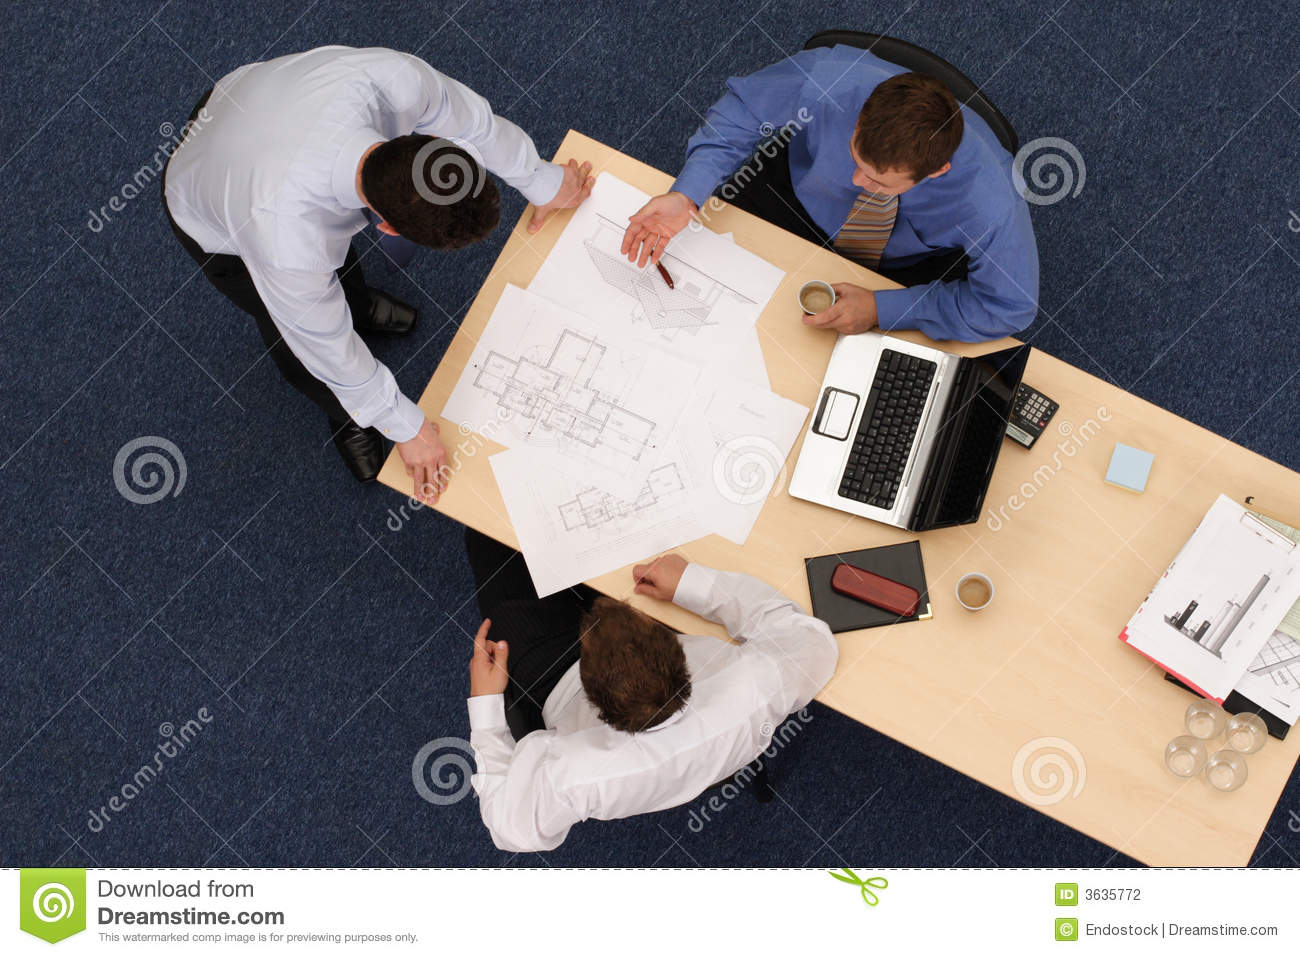 Three working business people over blue prints